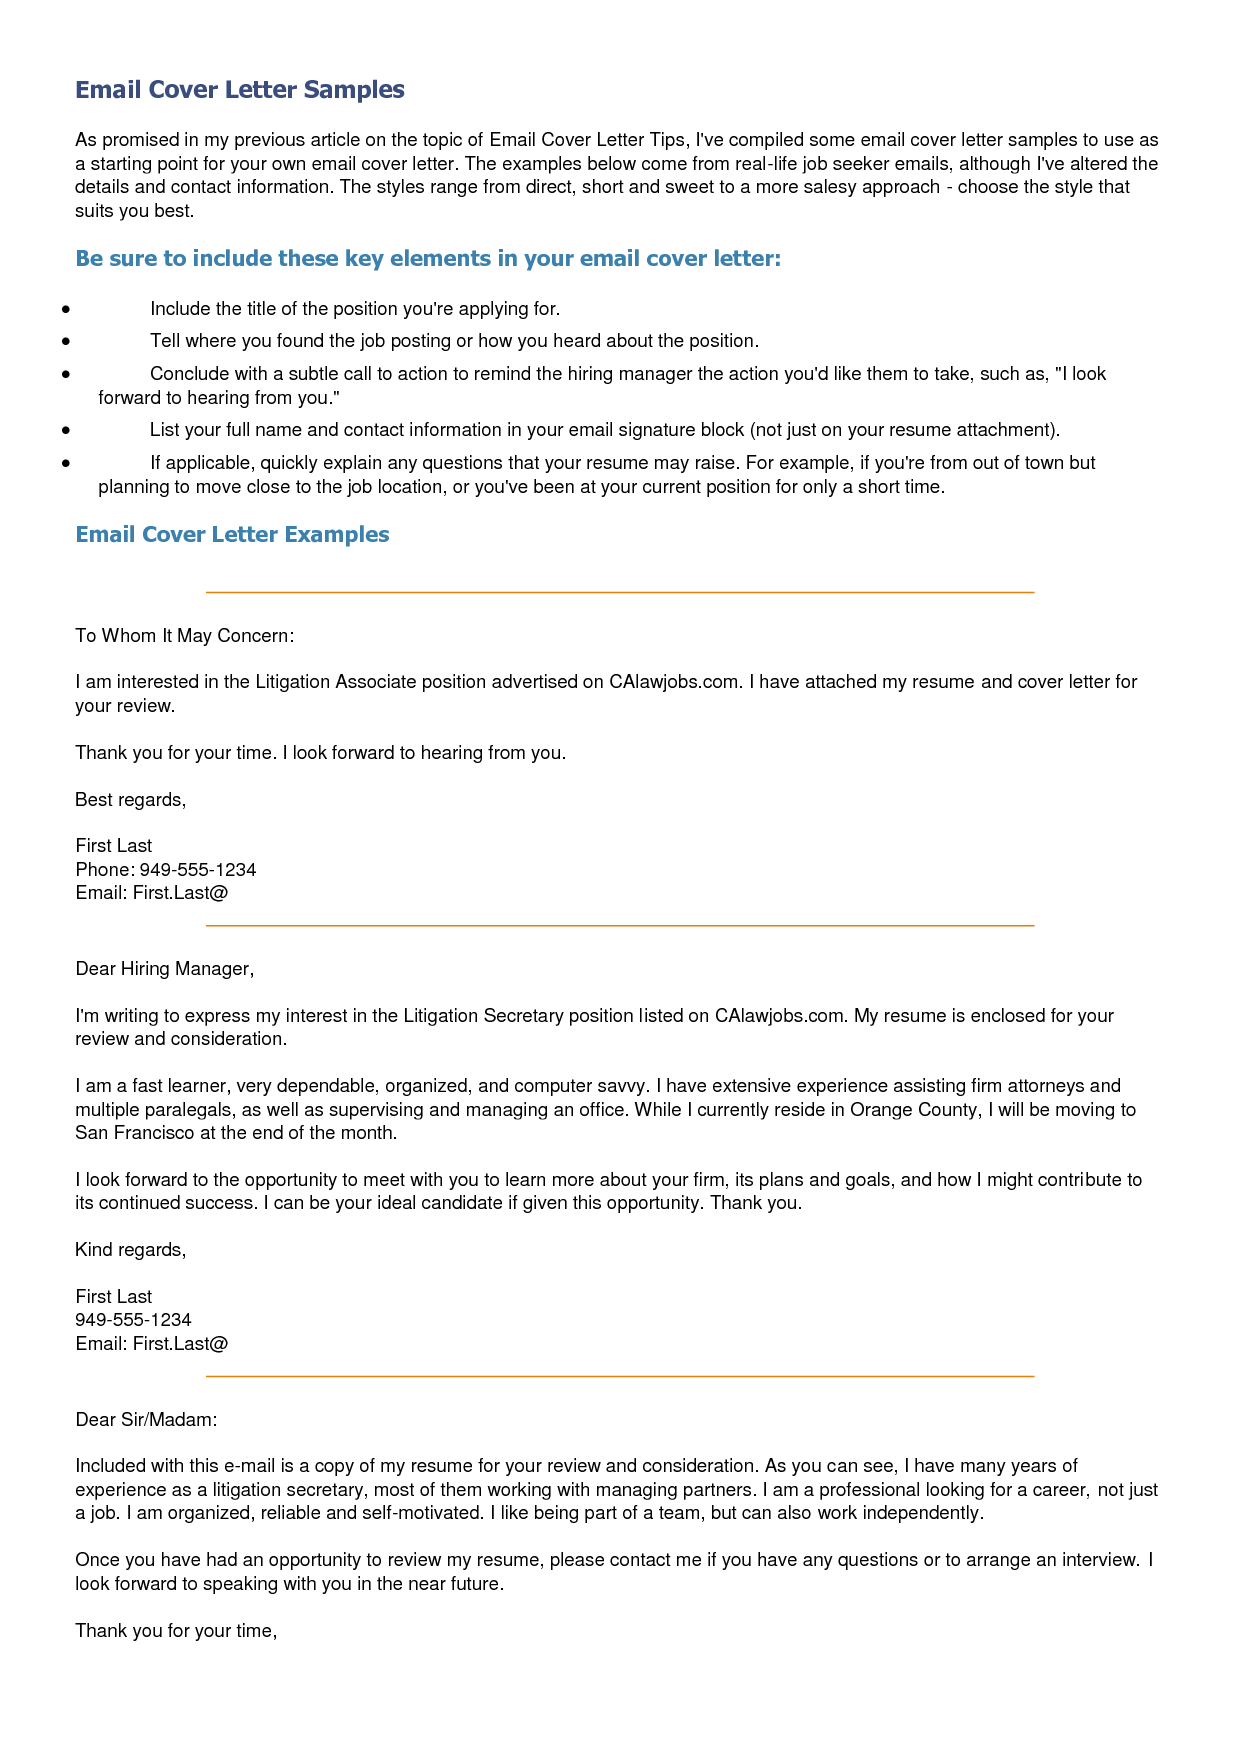 Email Cover Letter Sample Samplesg Business Via Certified Mail Resume  Sample Email Cover Letters